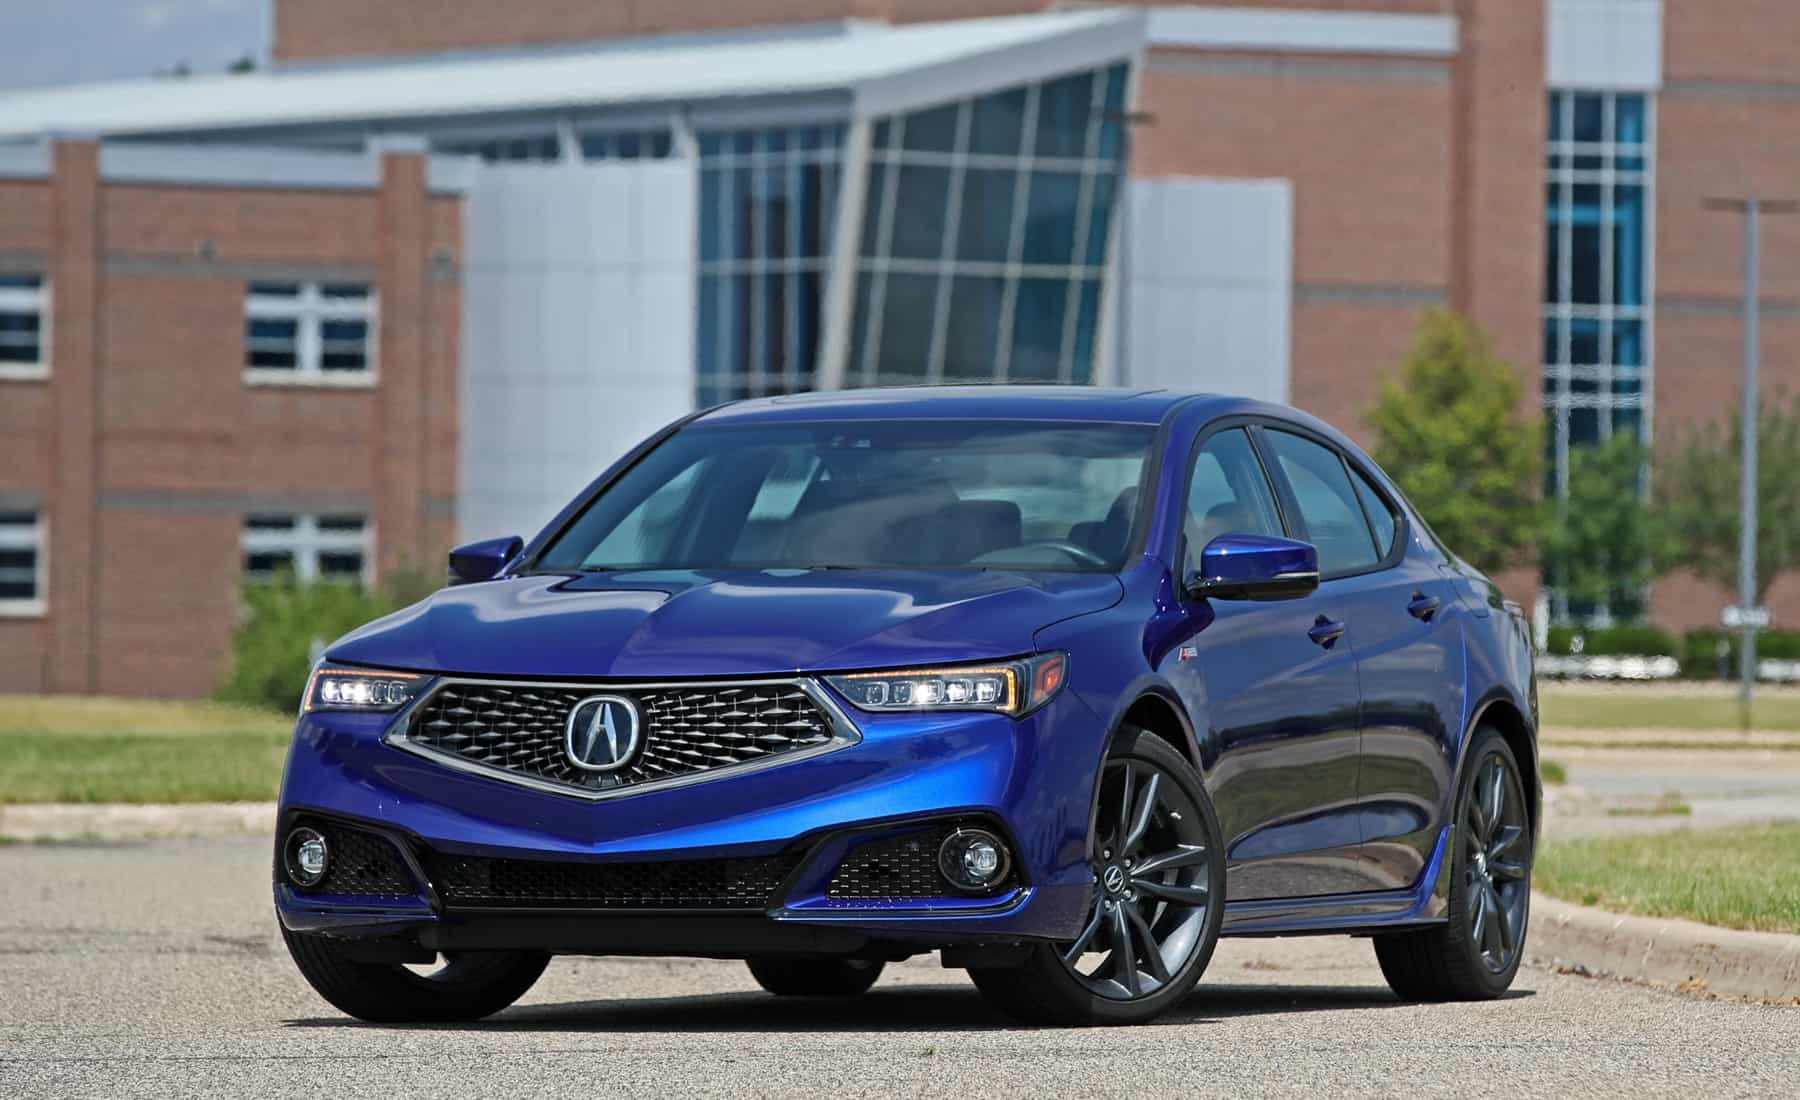 2018 Acura TLX Exterior Front (View 45 of 46)